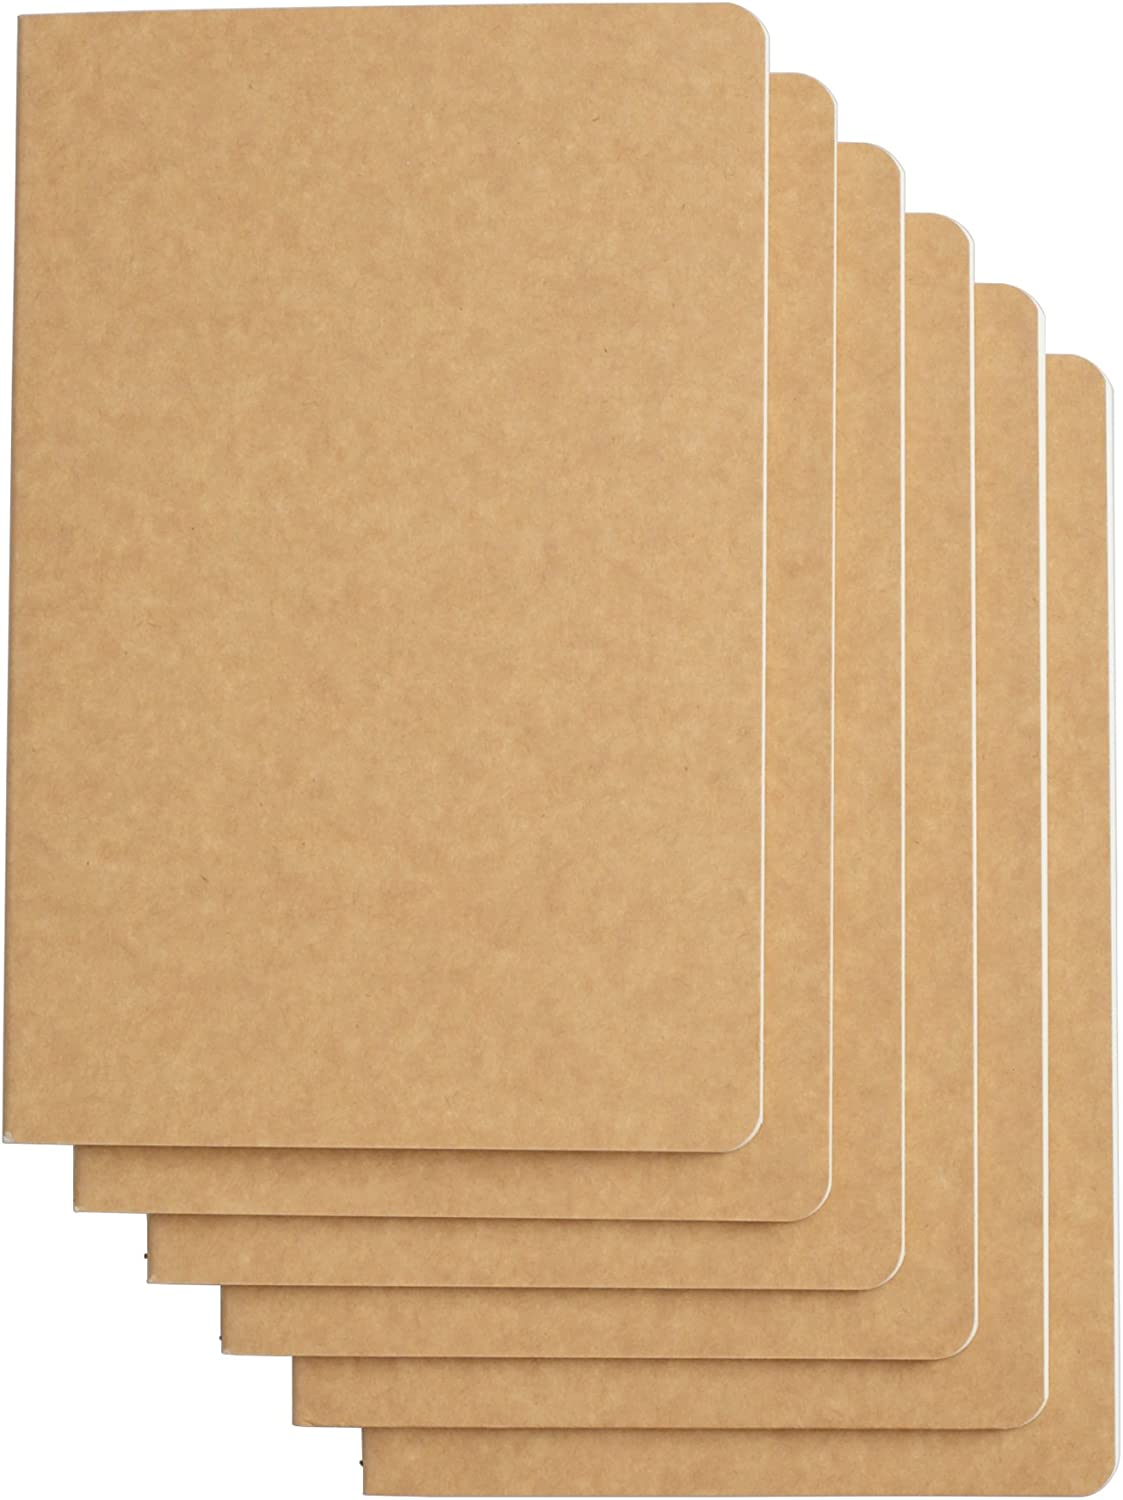 Travel Journal Set With 6 Notebook Journals for Travelers - Kraft Brown Soft Cover - A5 Size - 210 mm x 140 mm - 60 Dot Grid Pages/ 30 Sheets